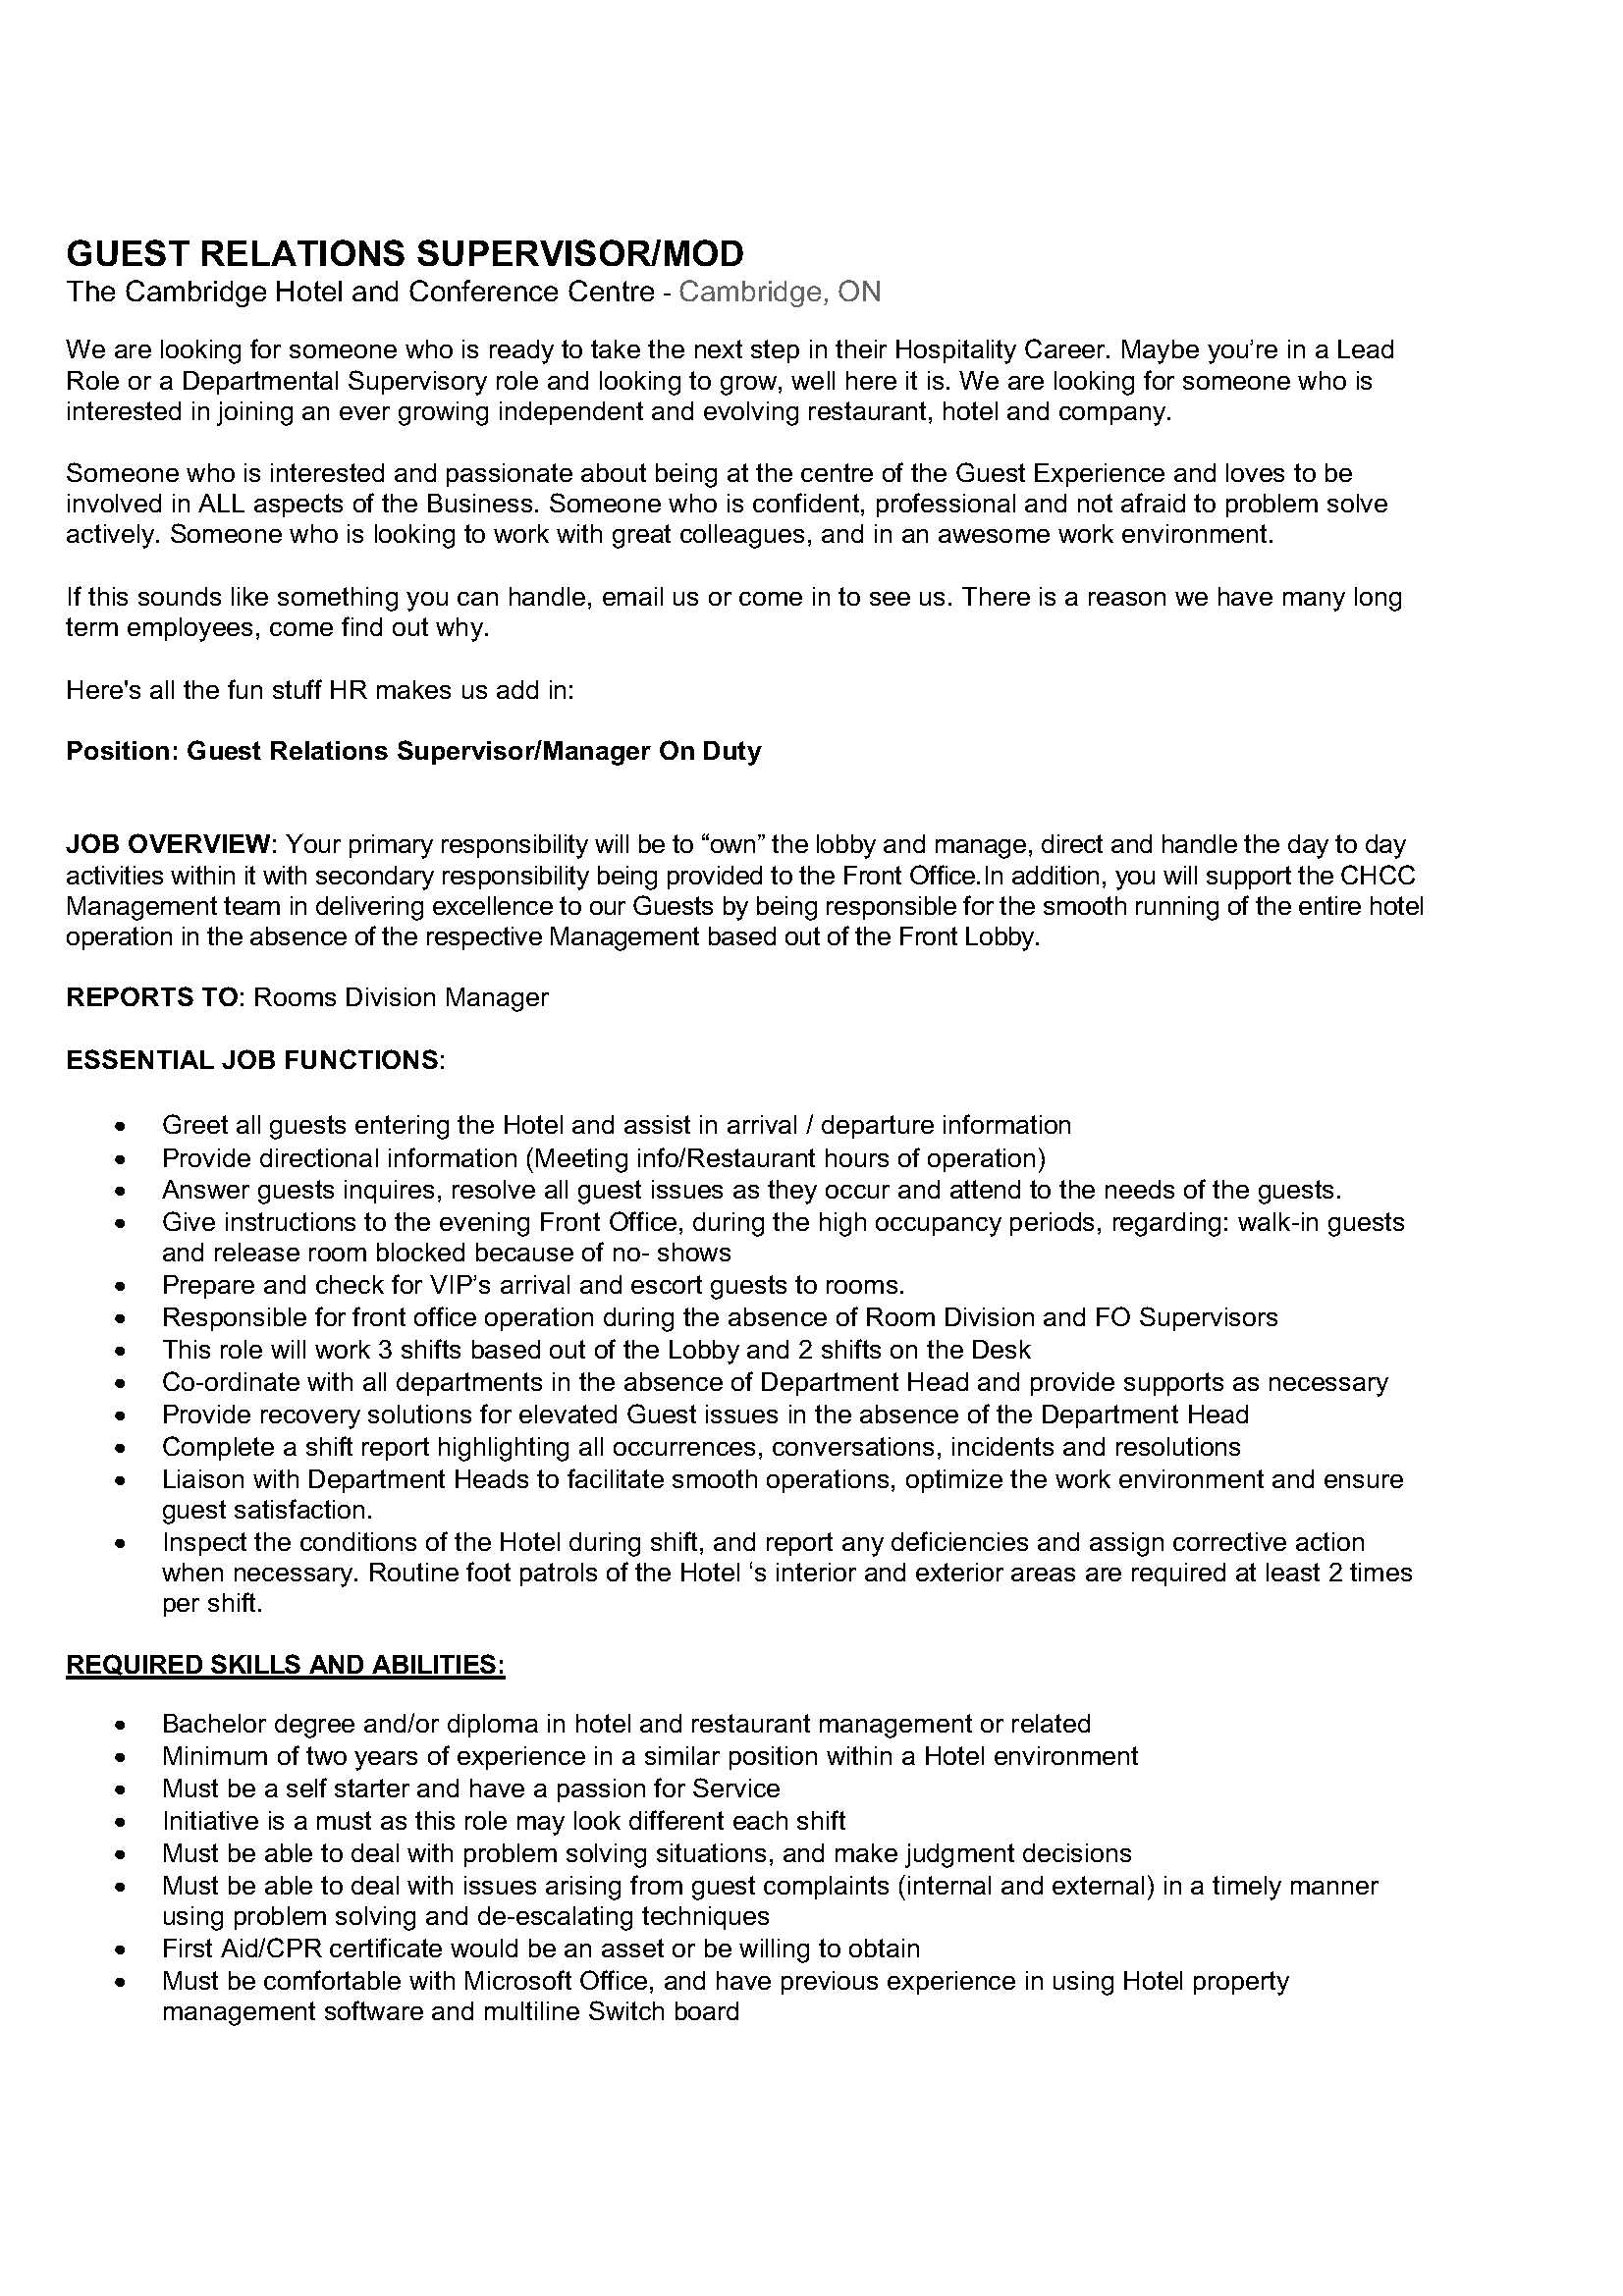 Cambridge Hotel  Employment  Jobs in Cambridge